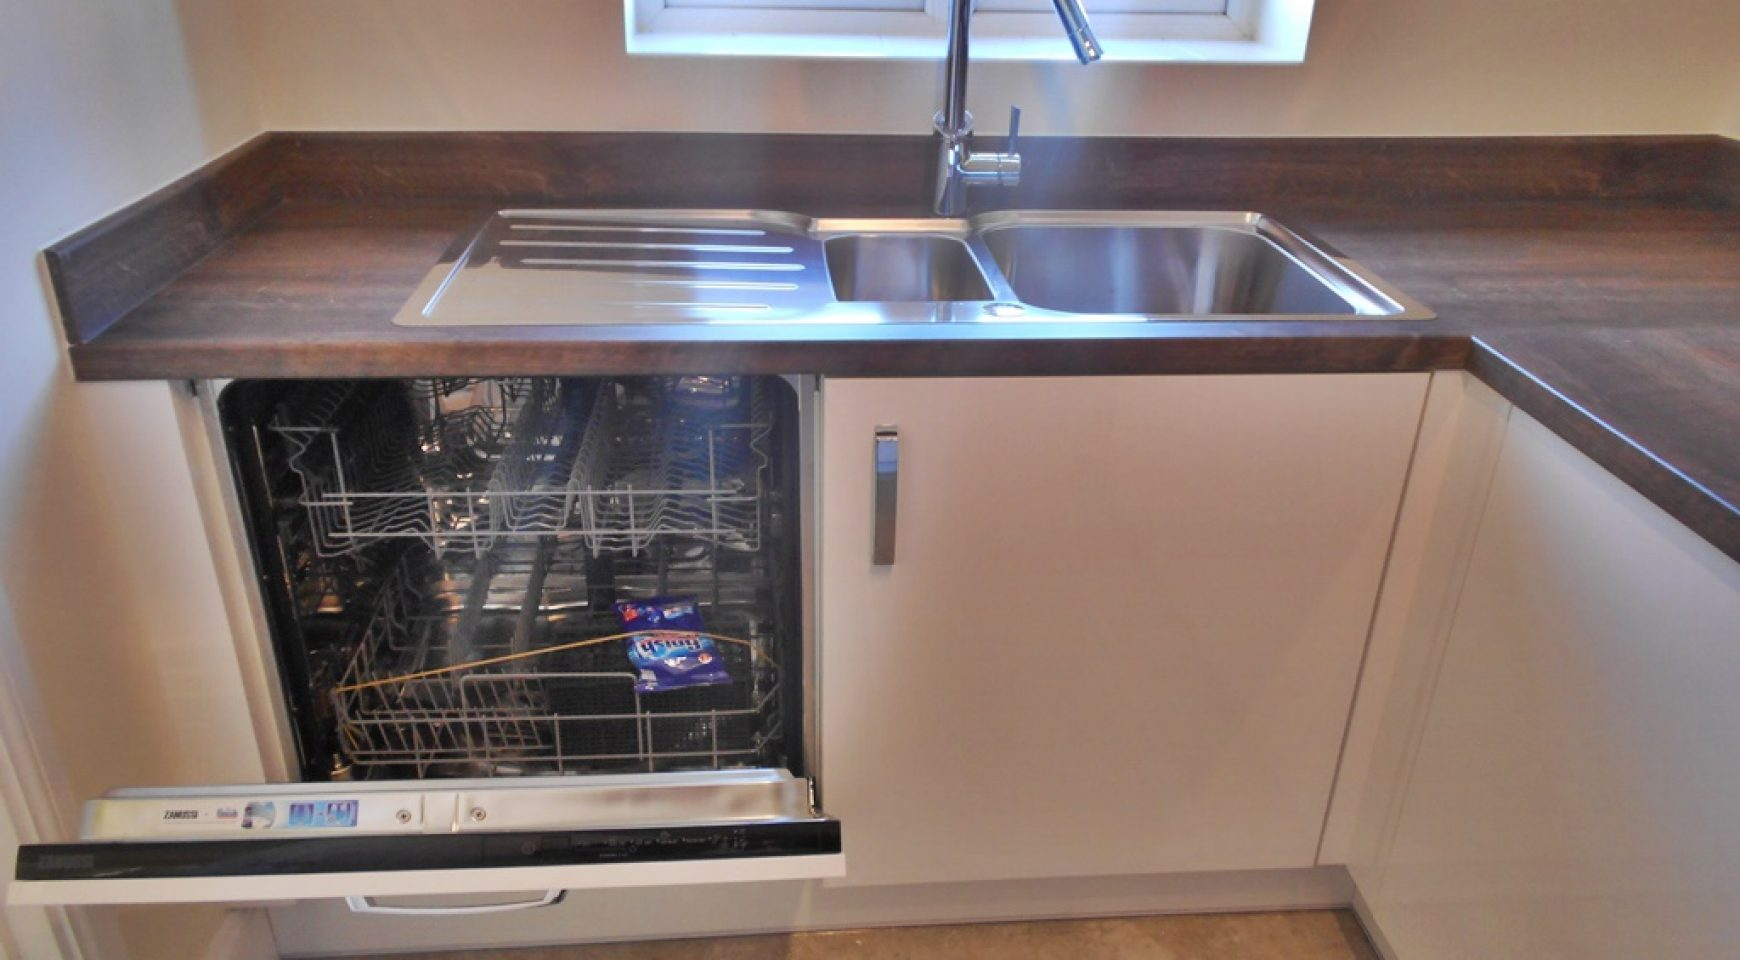 Uncategorized Kitchen Appliances Derby nottingham drive streets ahead estates sold stc